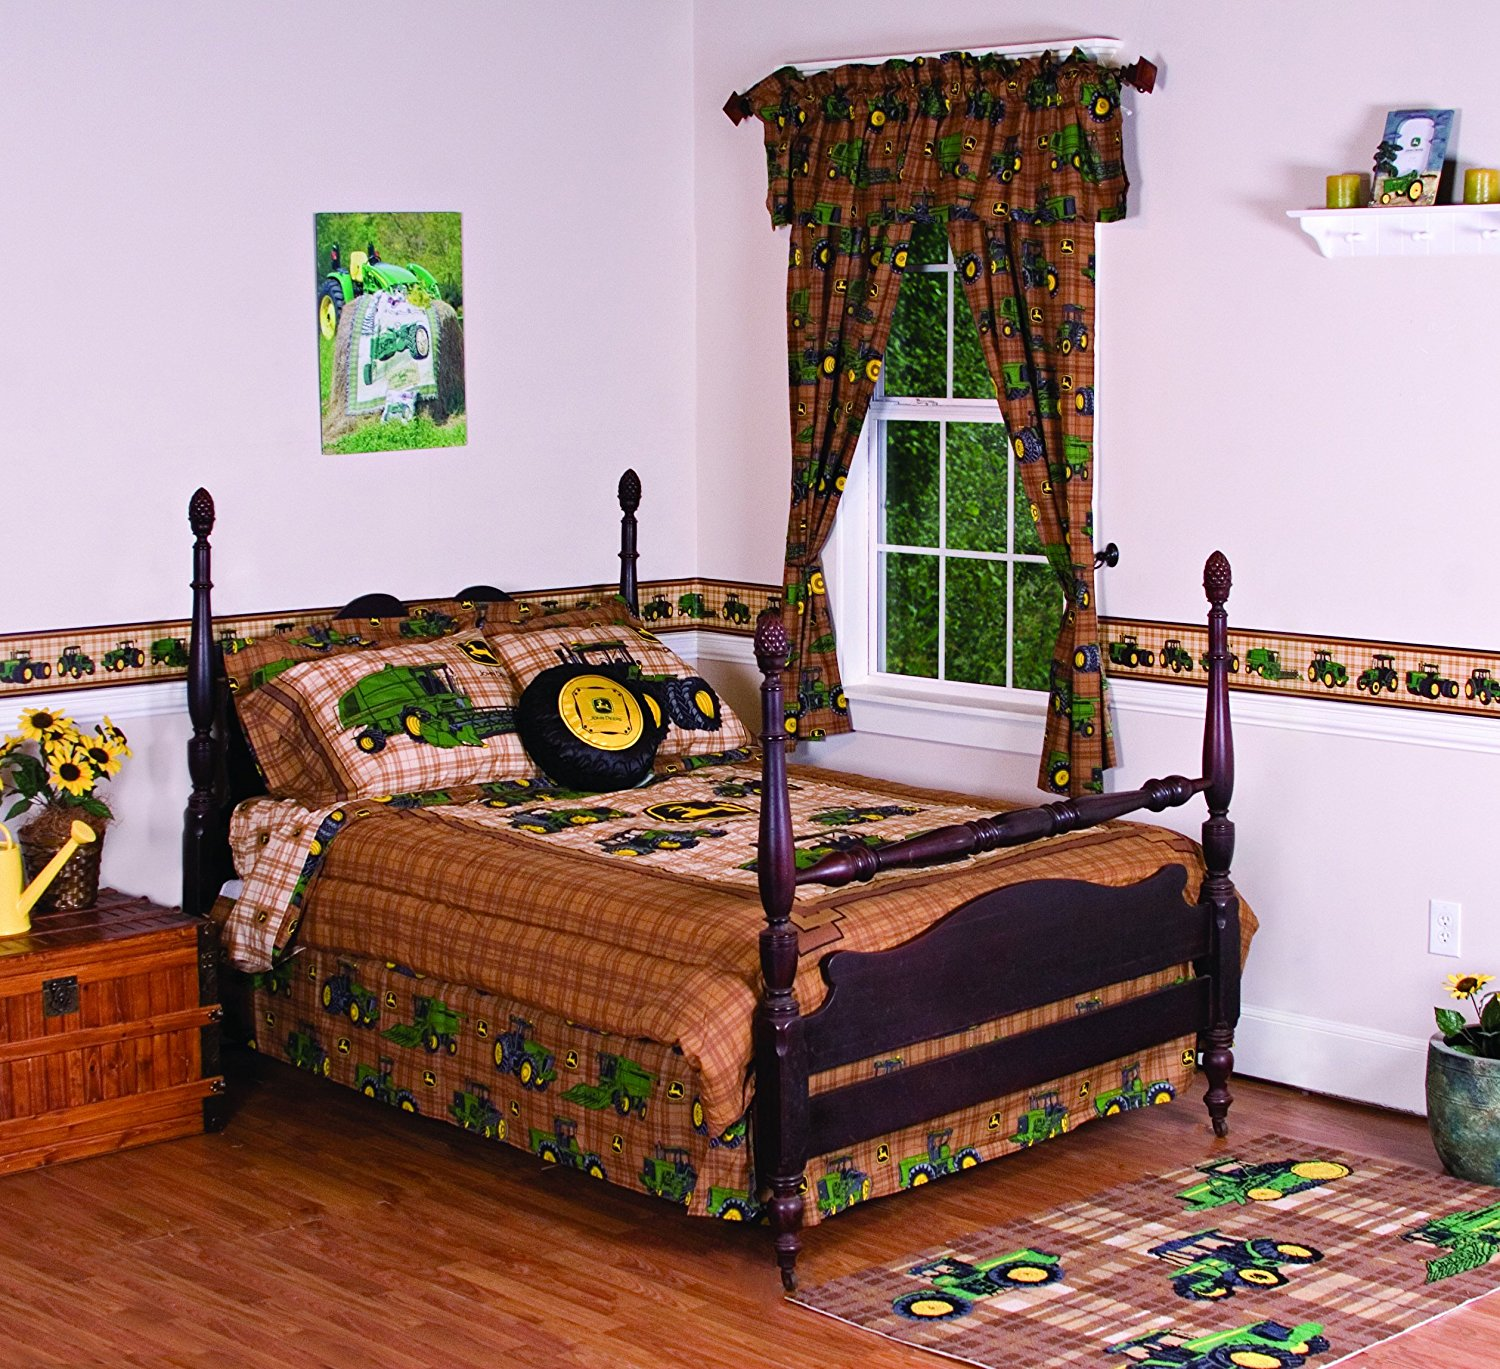 John Deere Tractor Bed | John Deere Baby Bedding Crib Sets | John Deere Bedding